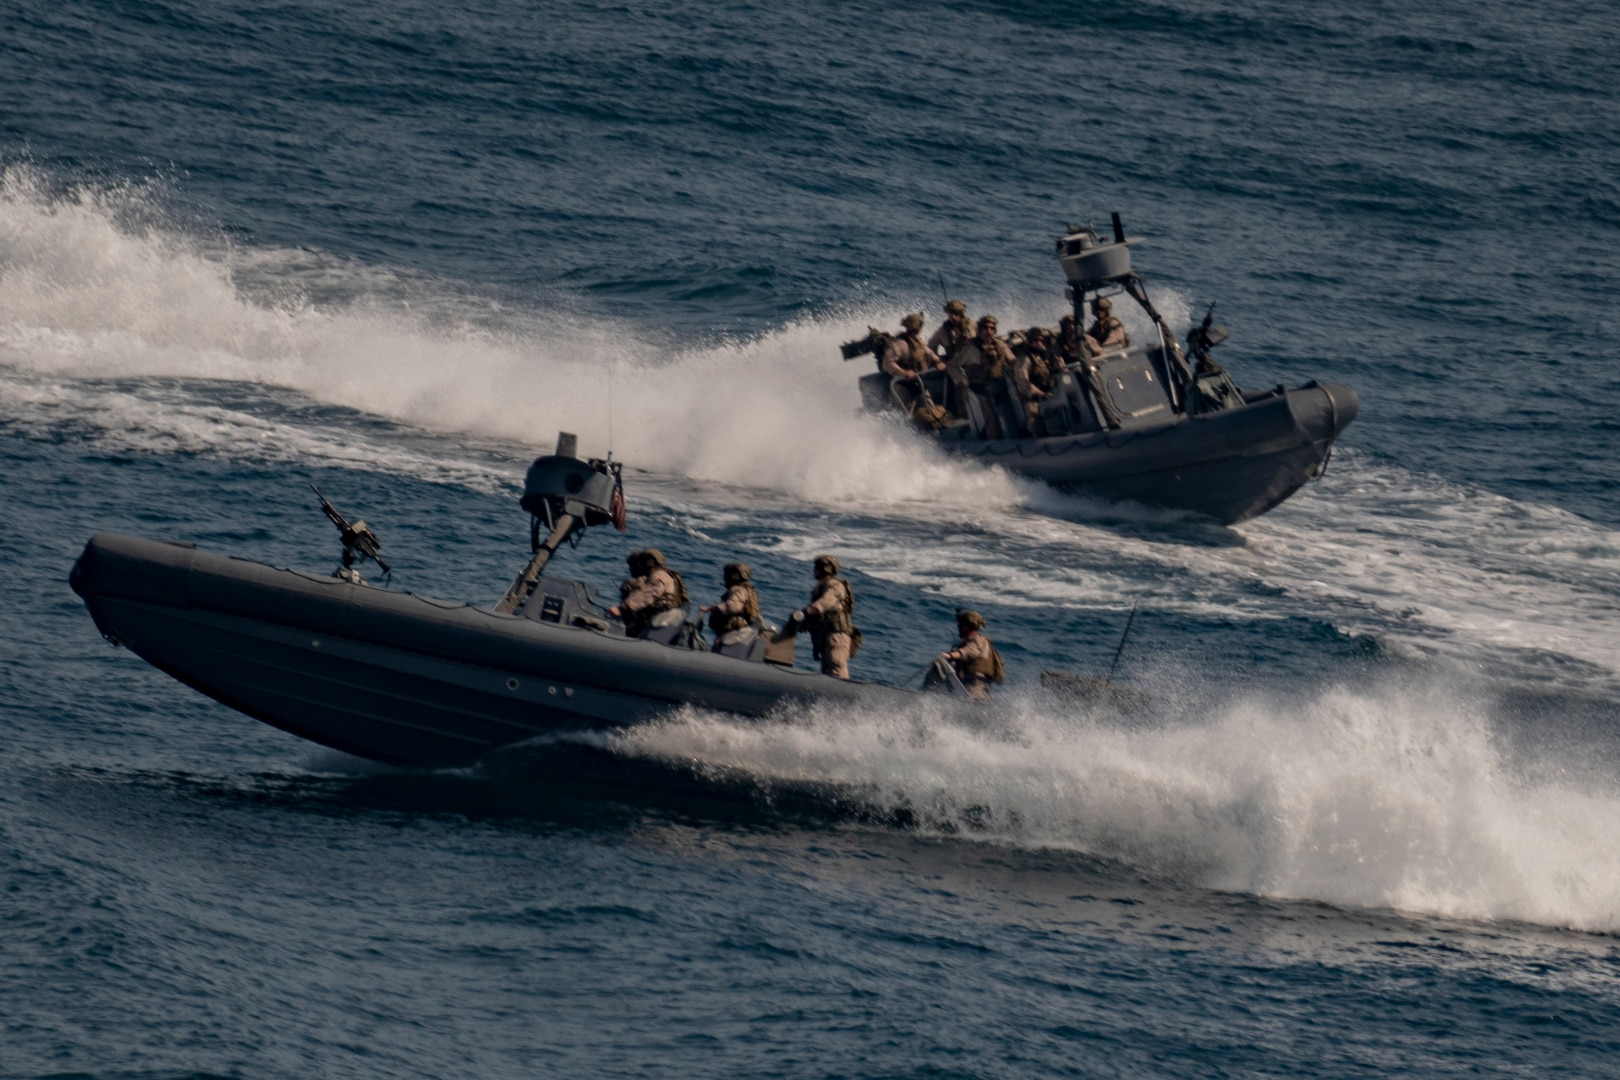 Marines assigned to the All Domain Reconnaissance Detachment boat team, 11th Marine Expeditionary Unit (MEU), conduct maritime navigation training aboard rigid inflatable boats, Oct. 8.